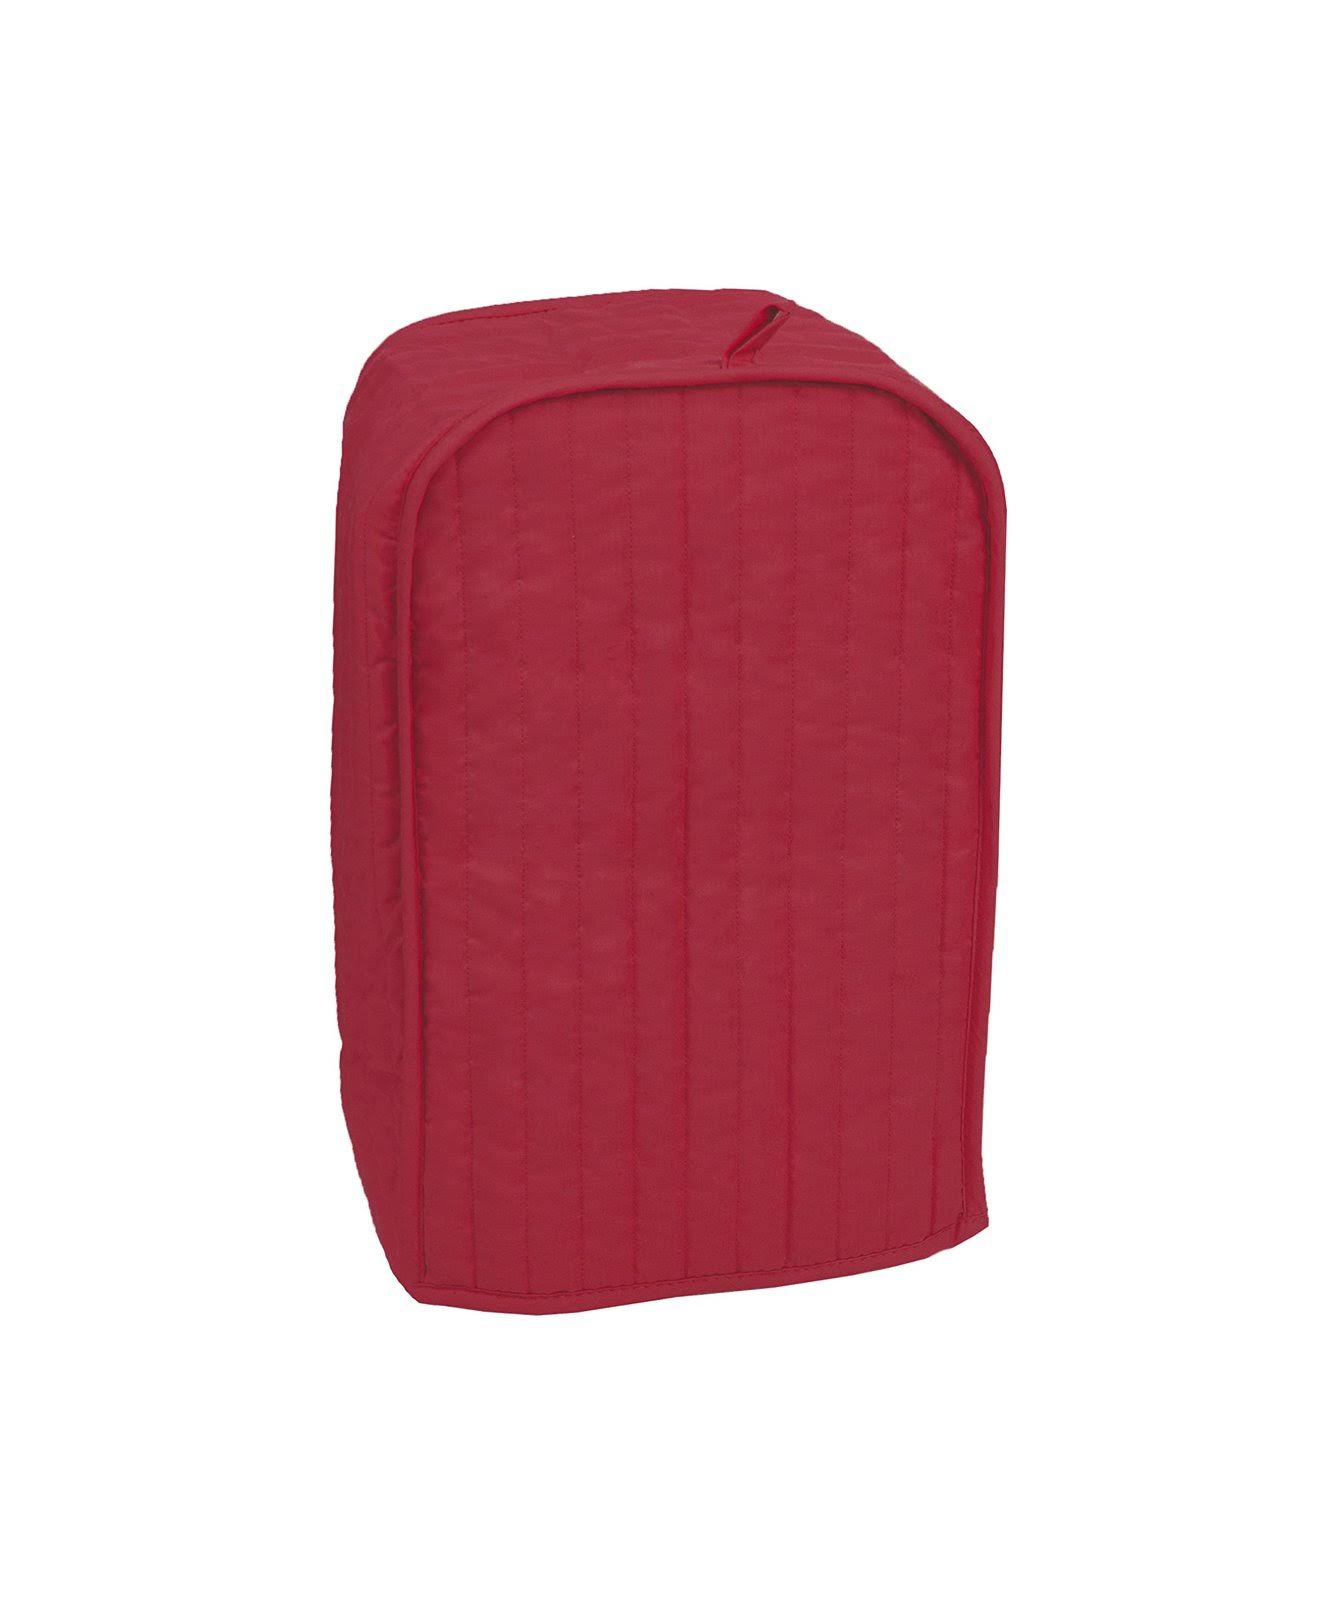 Ritz Quilted Blender Appliance, Paprika / Mixer/Coffee Machine Cover